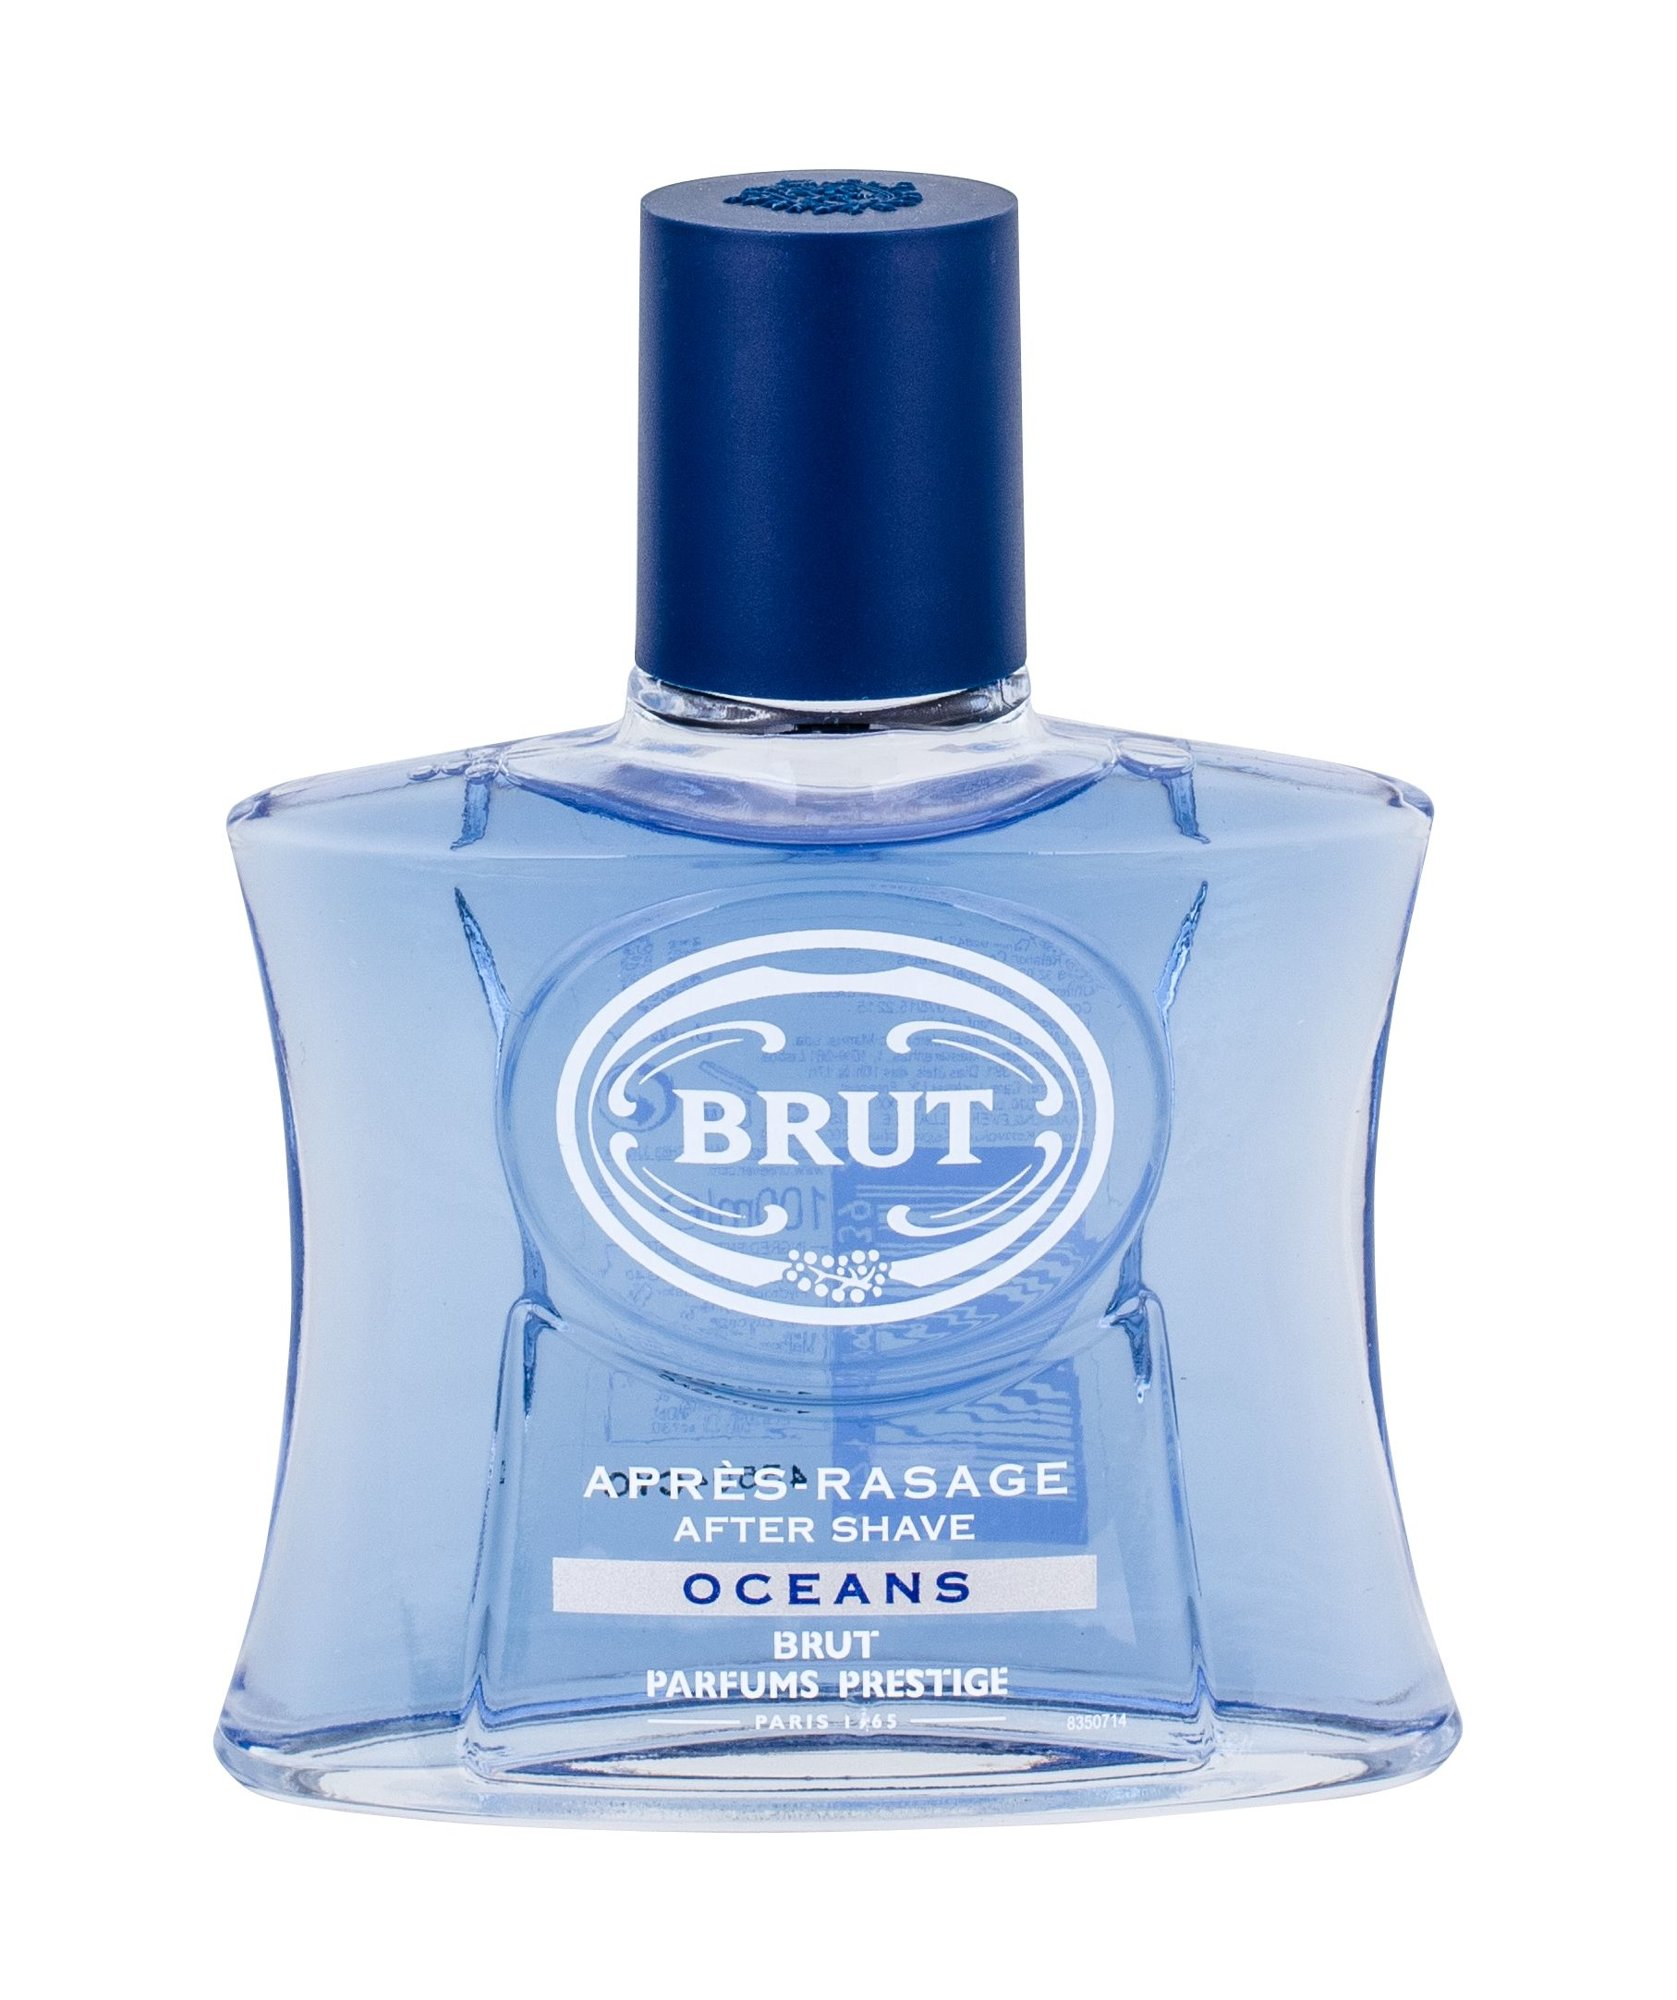 Brut Oceans Aftershave 100ml